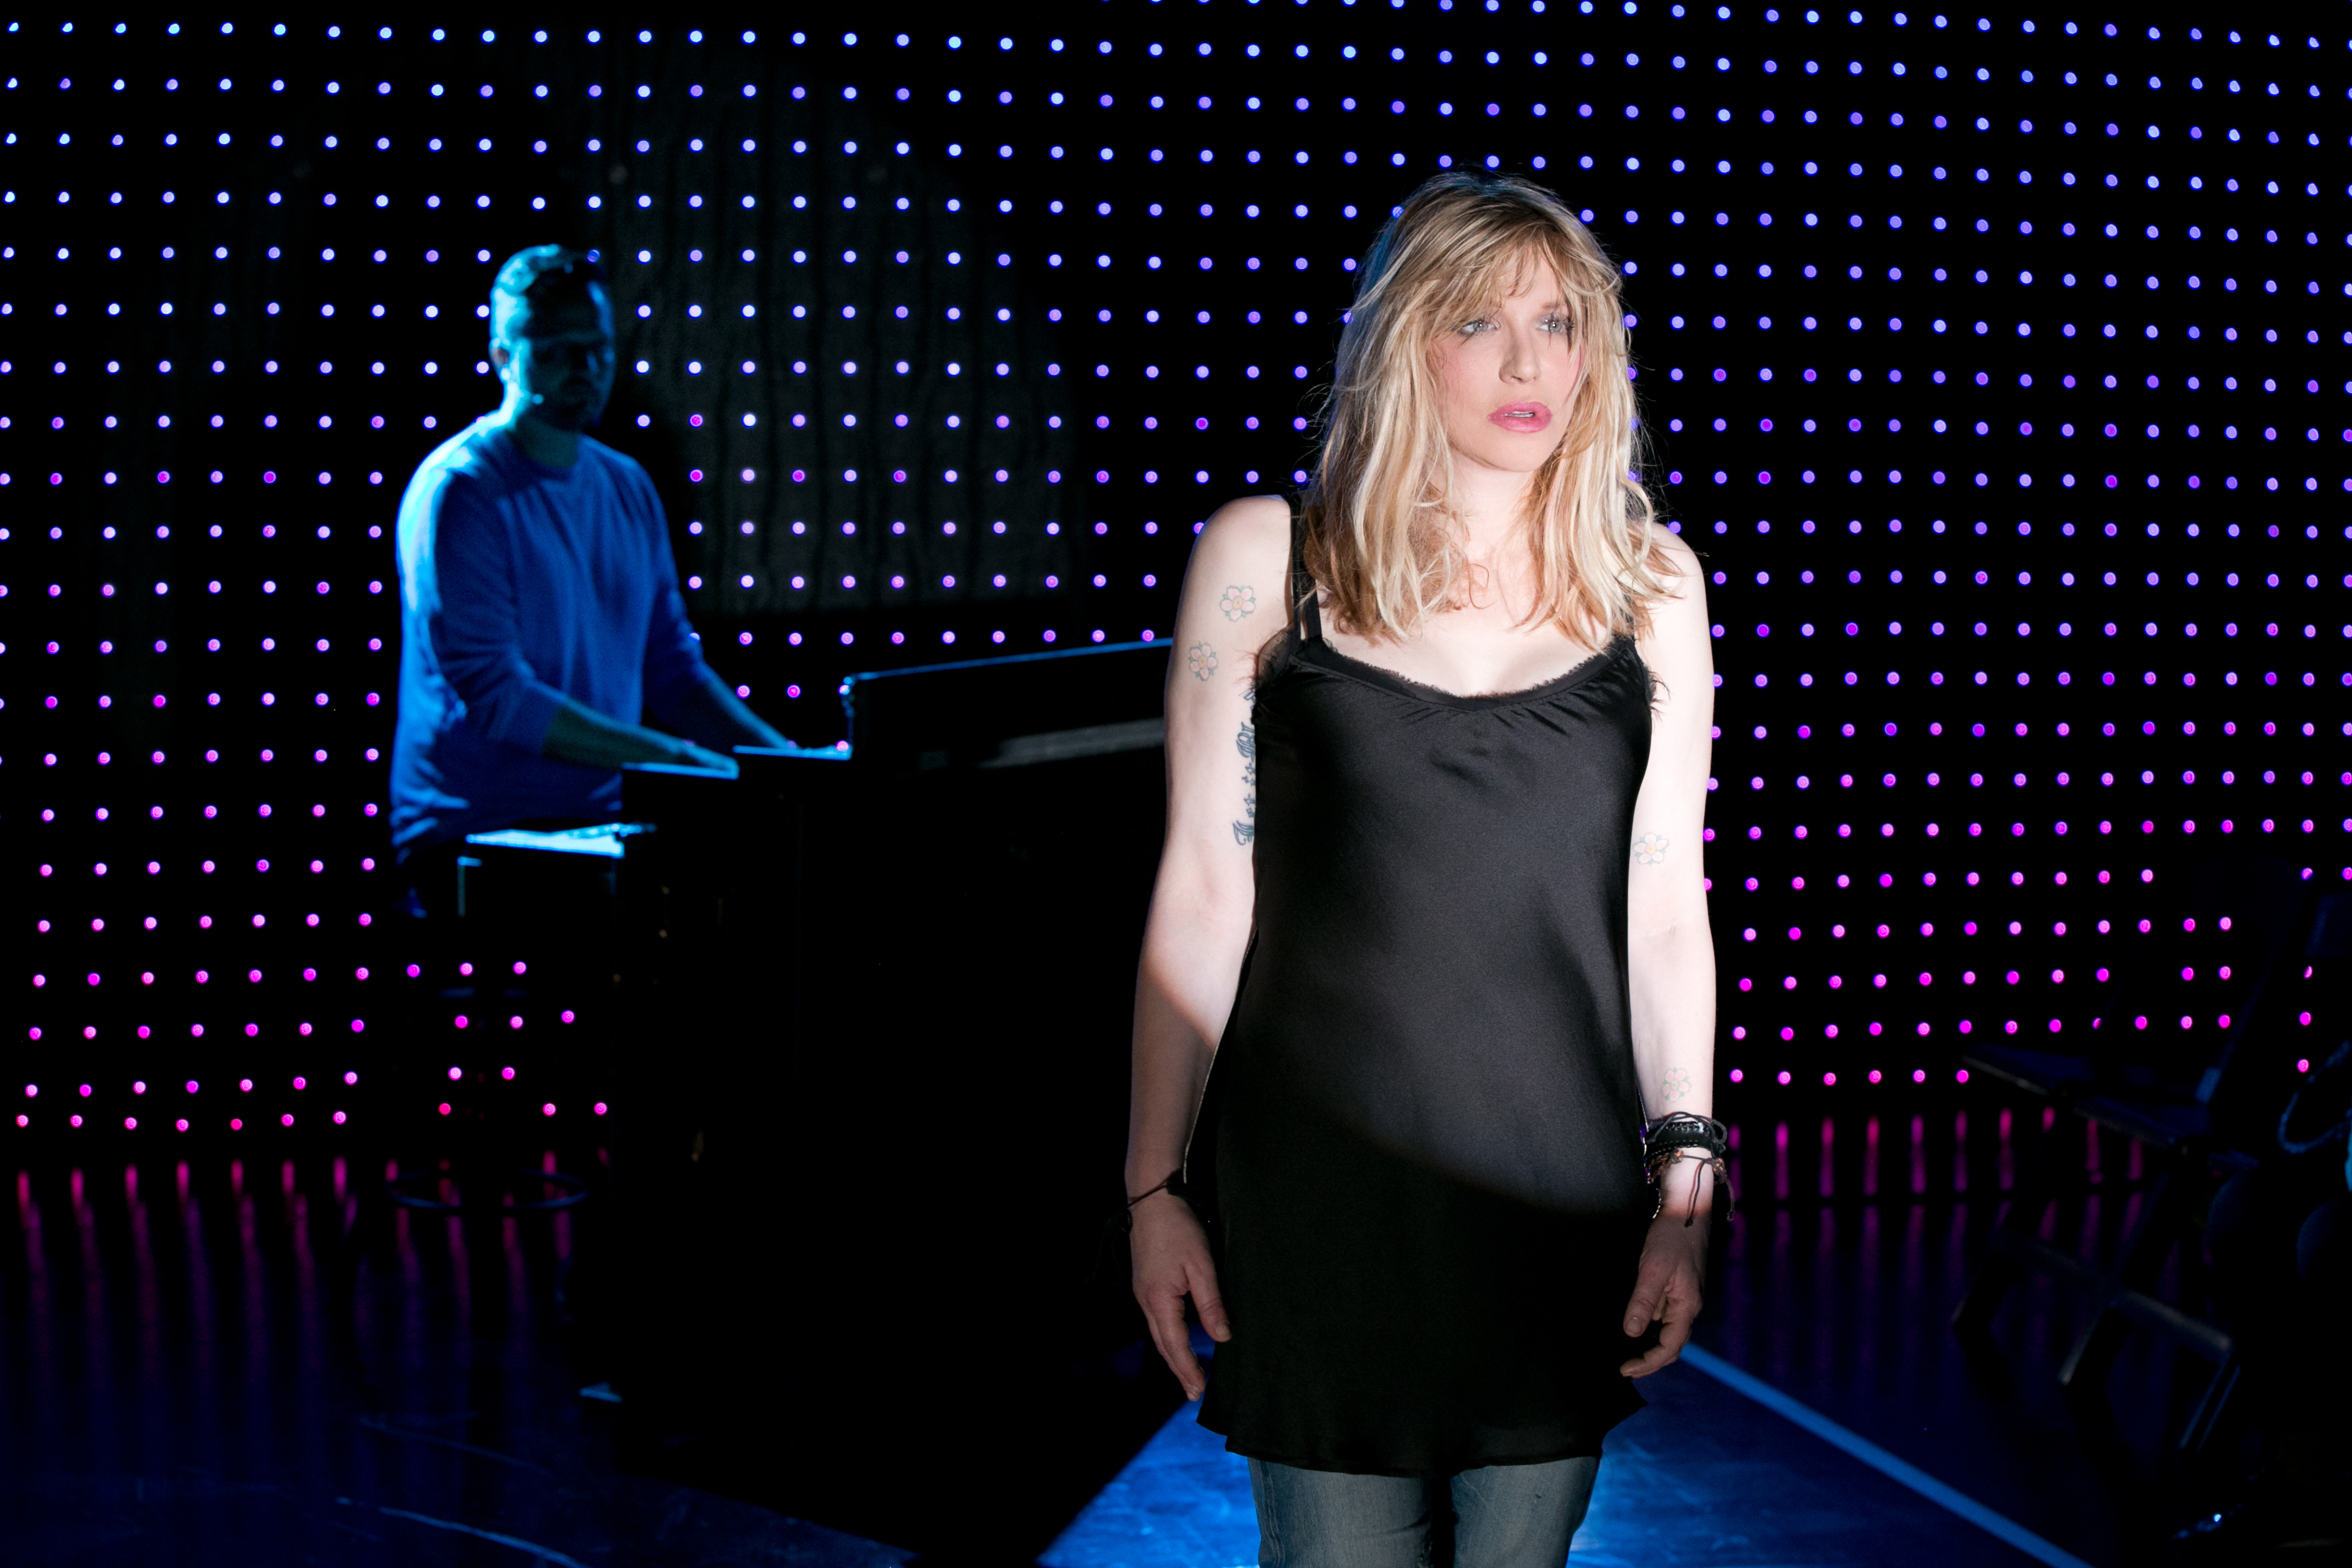 Todd Almond and Courtney Love in Kansas City Choir Boy.